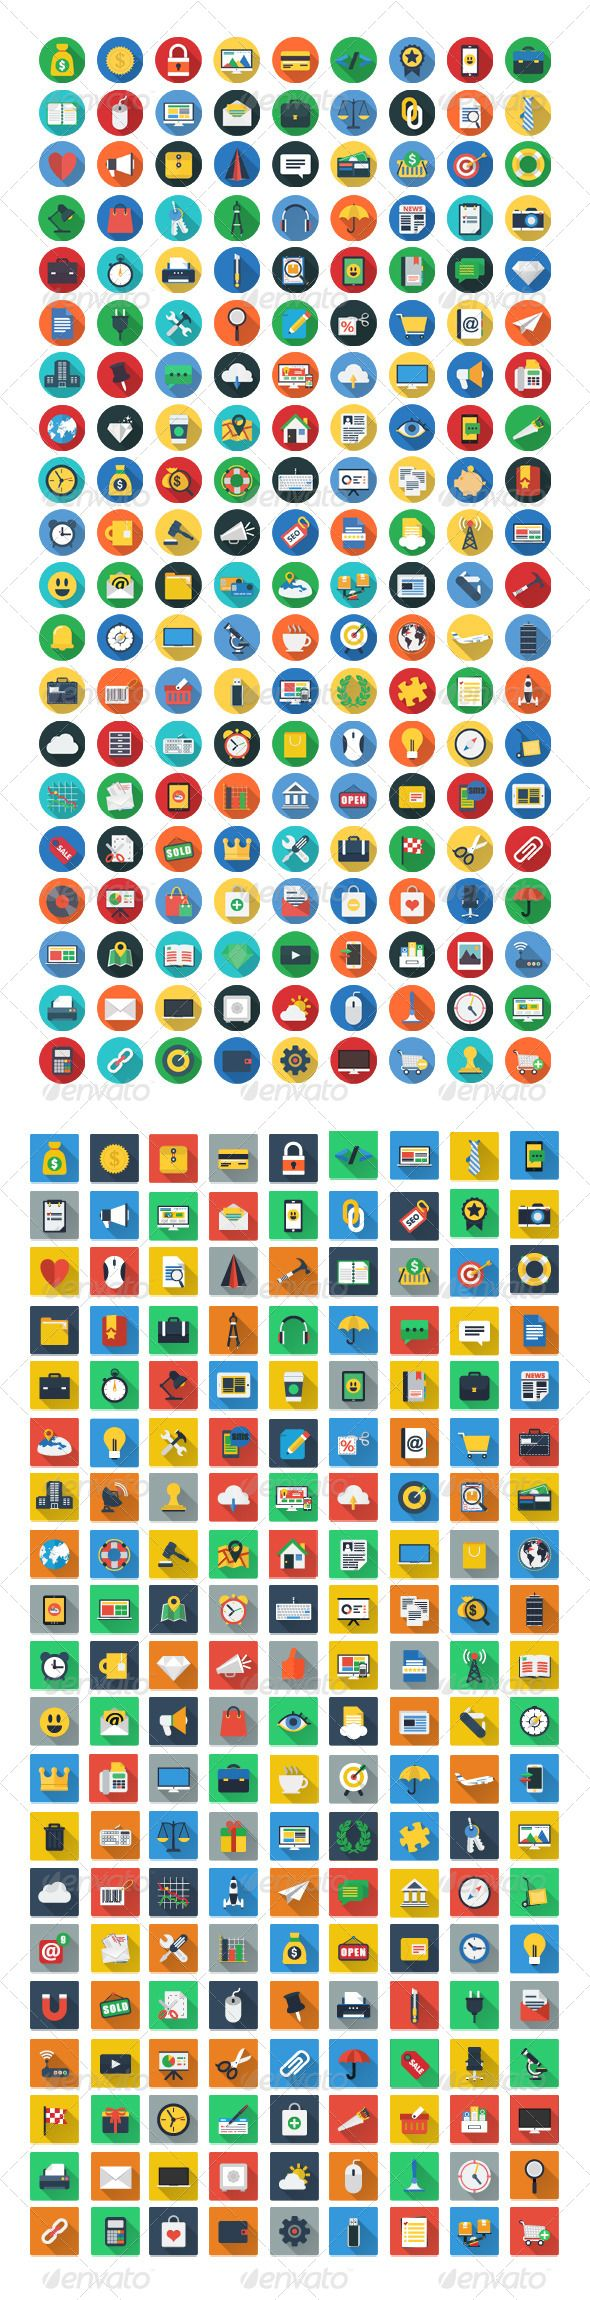 200 Flat Icons   	Mobile marketing, app, app development, business, colorful, communication, computer, cross platform, development, flat icon, flat icons, flat icons set, glyphs, graphics, icon, icons, icons flat, interface, internet, line, long shadow, mac, media, modern, responsive, seo icons, social media, social network, stroke, web